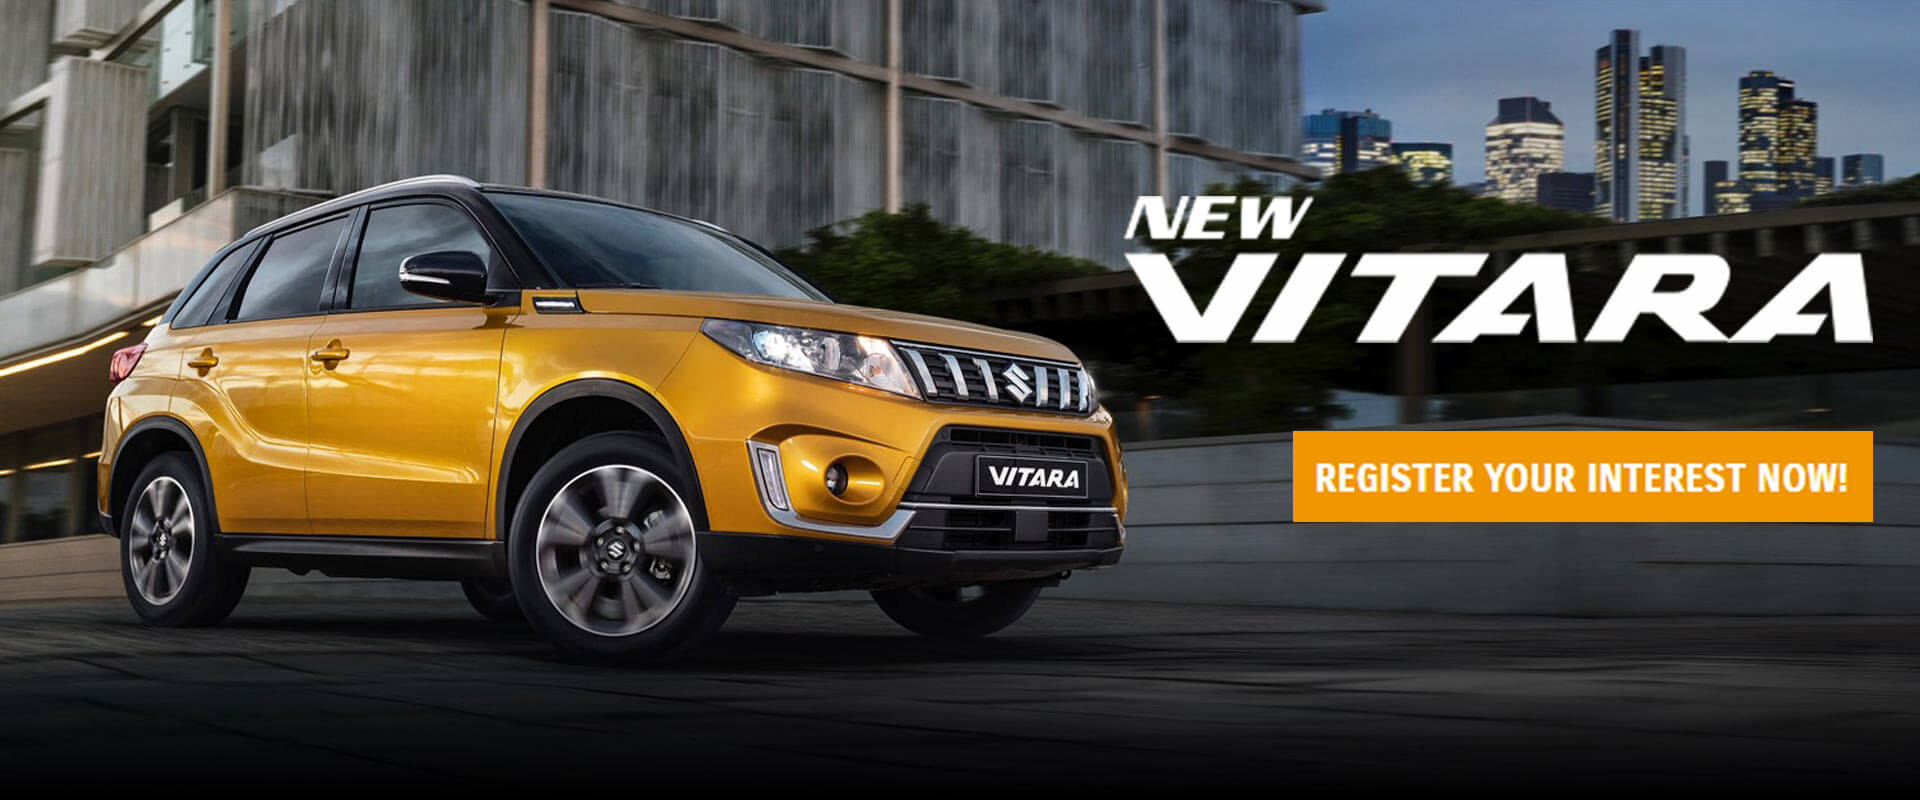 New Vitara Coming Soon